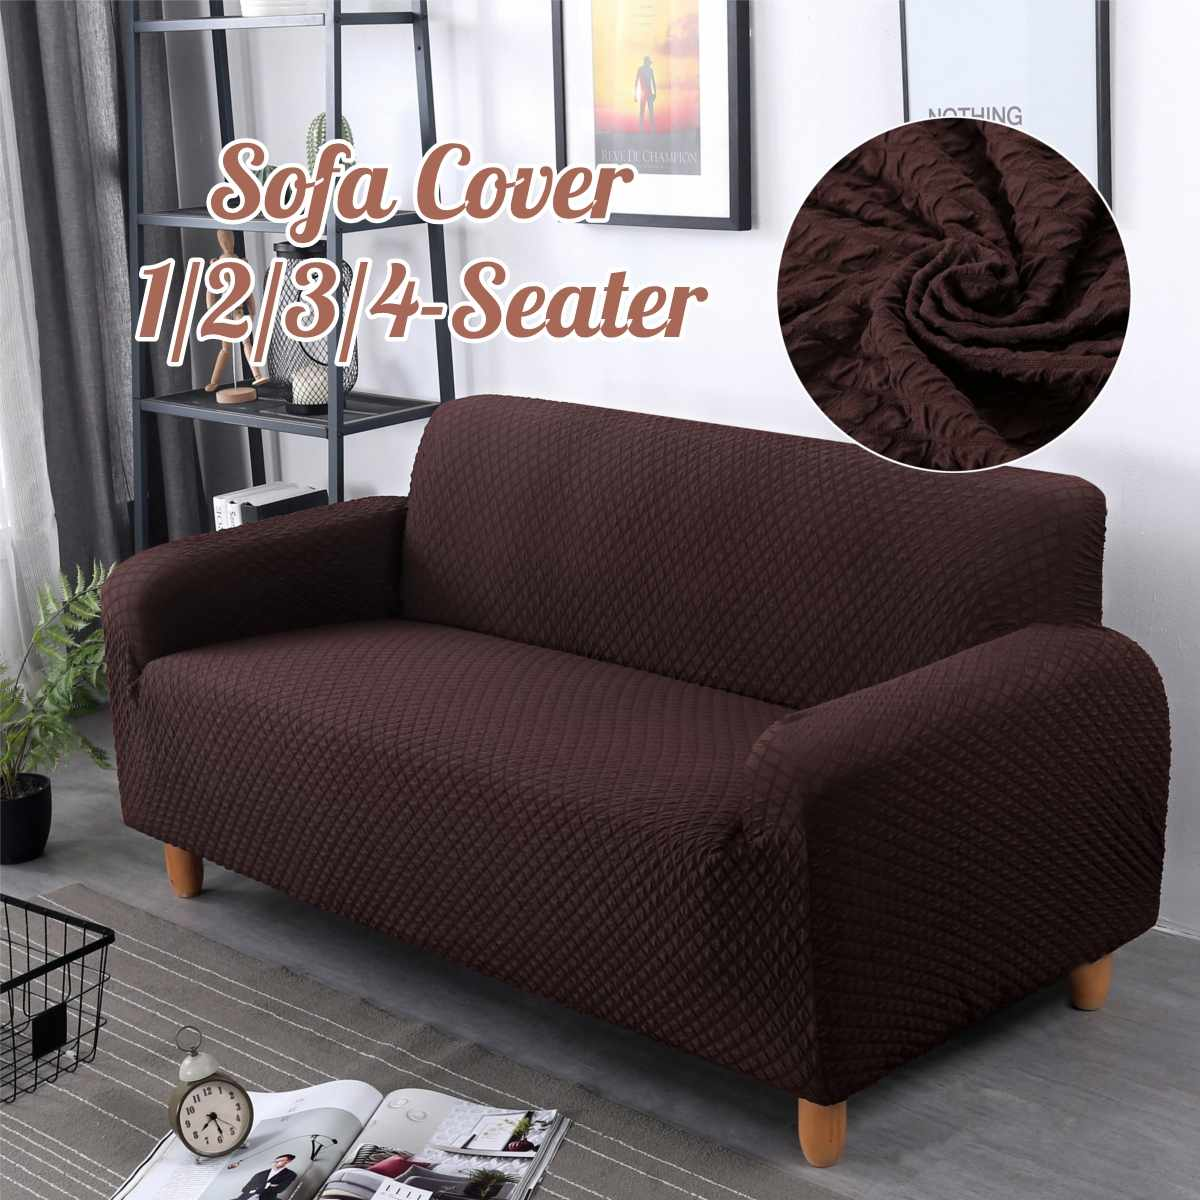 Japan Home Sofa Us 4 92 31 Off Japanese Solid Spandex Knitting Slipcover Sofa Non Slip Elastic Full Sofa Cover 1 2 3 4 Seater Stretch Pillow Case Chair Covers In